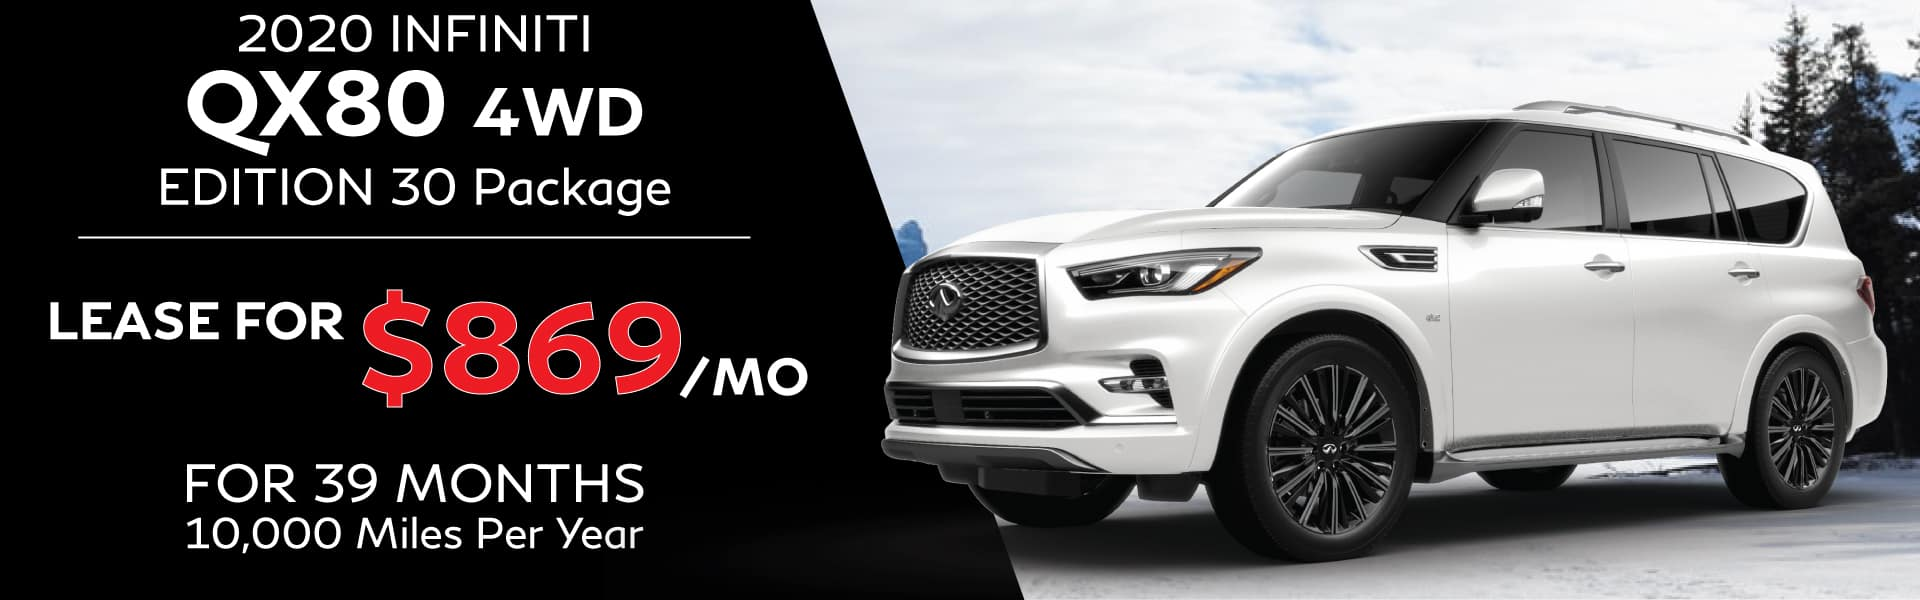 2020 INFINITI QX80 4WD Edition 30 Package. Lease for $869 per month for 39 months 10,000 miles per year. Offer expires 3/31/2020.